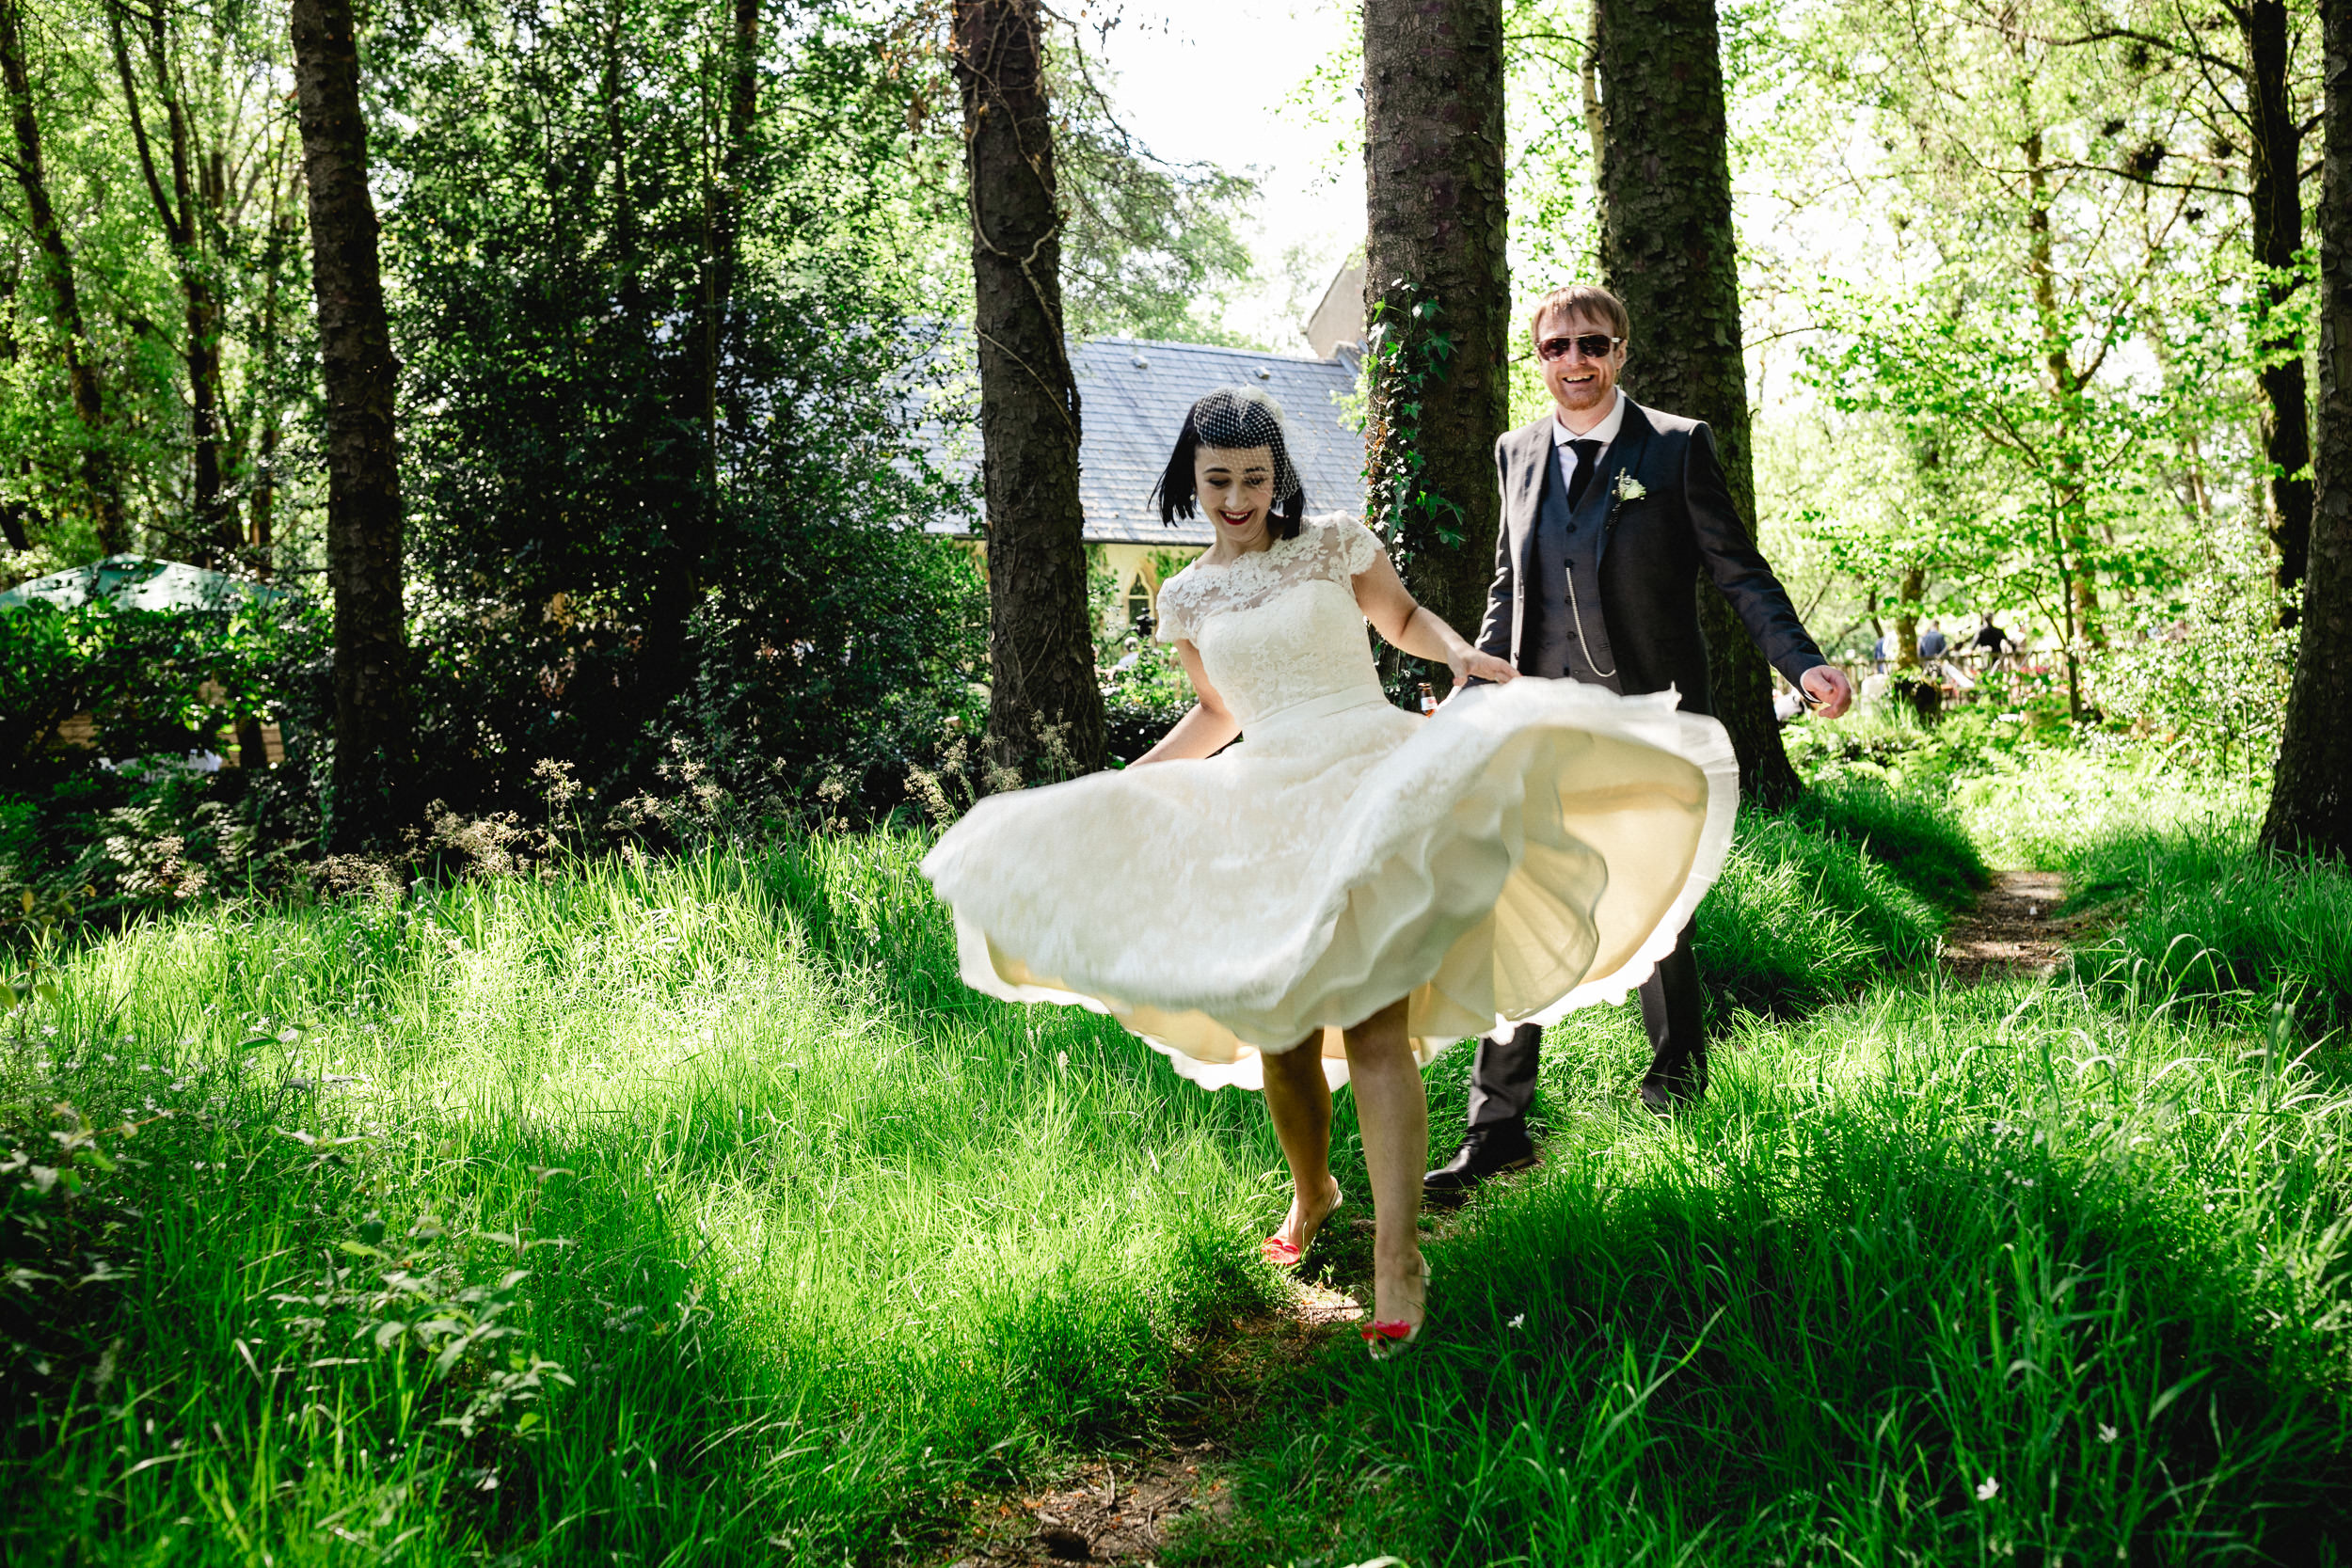 clairebyrnephotography-fun-wedding-photographer-ireland-creative-108.jpg